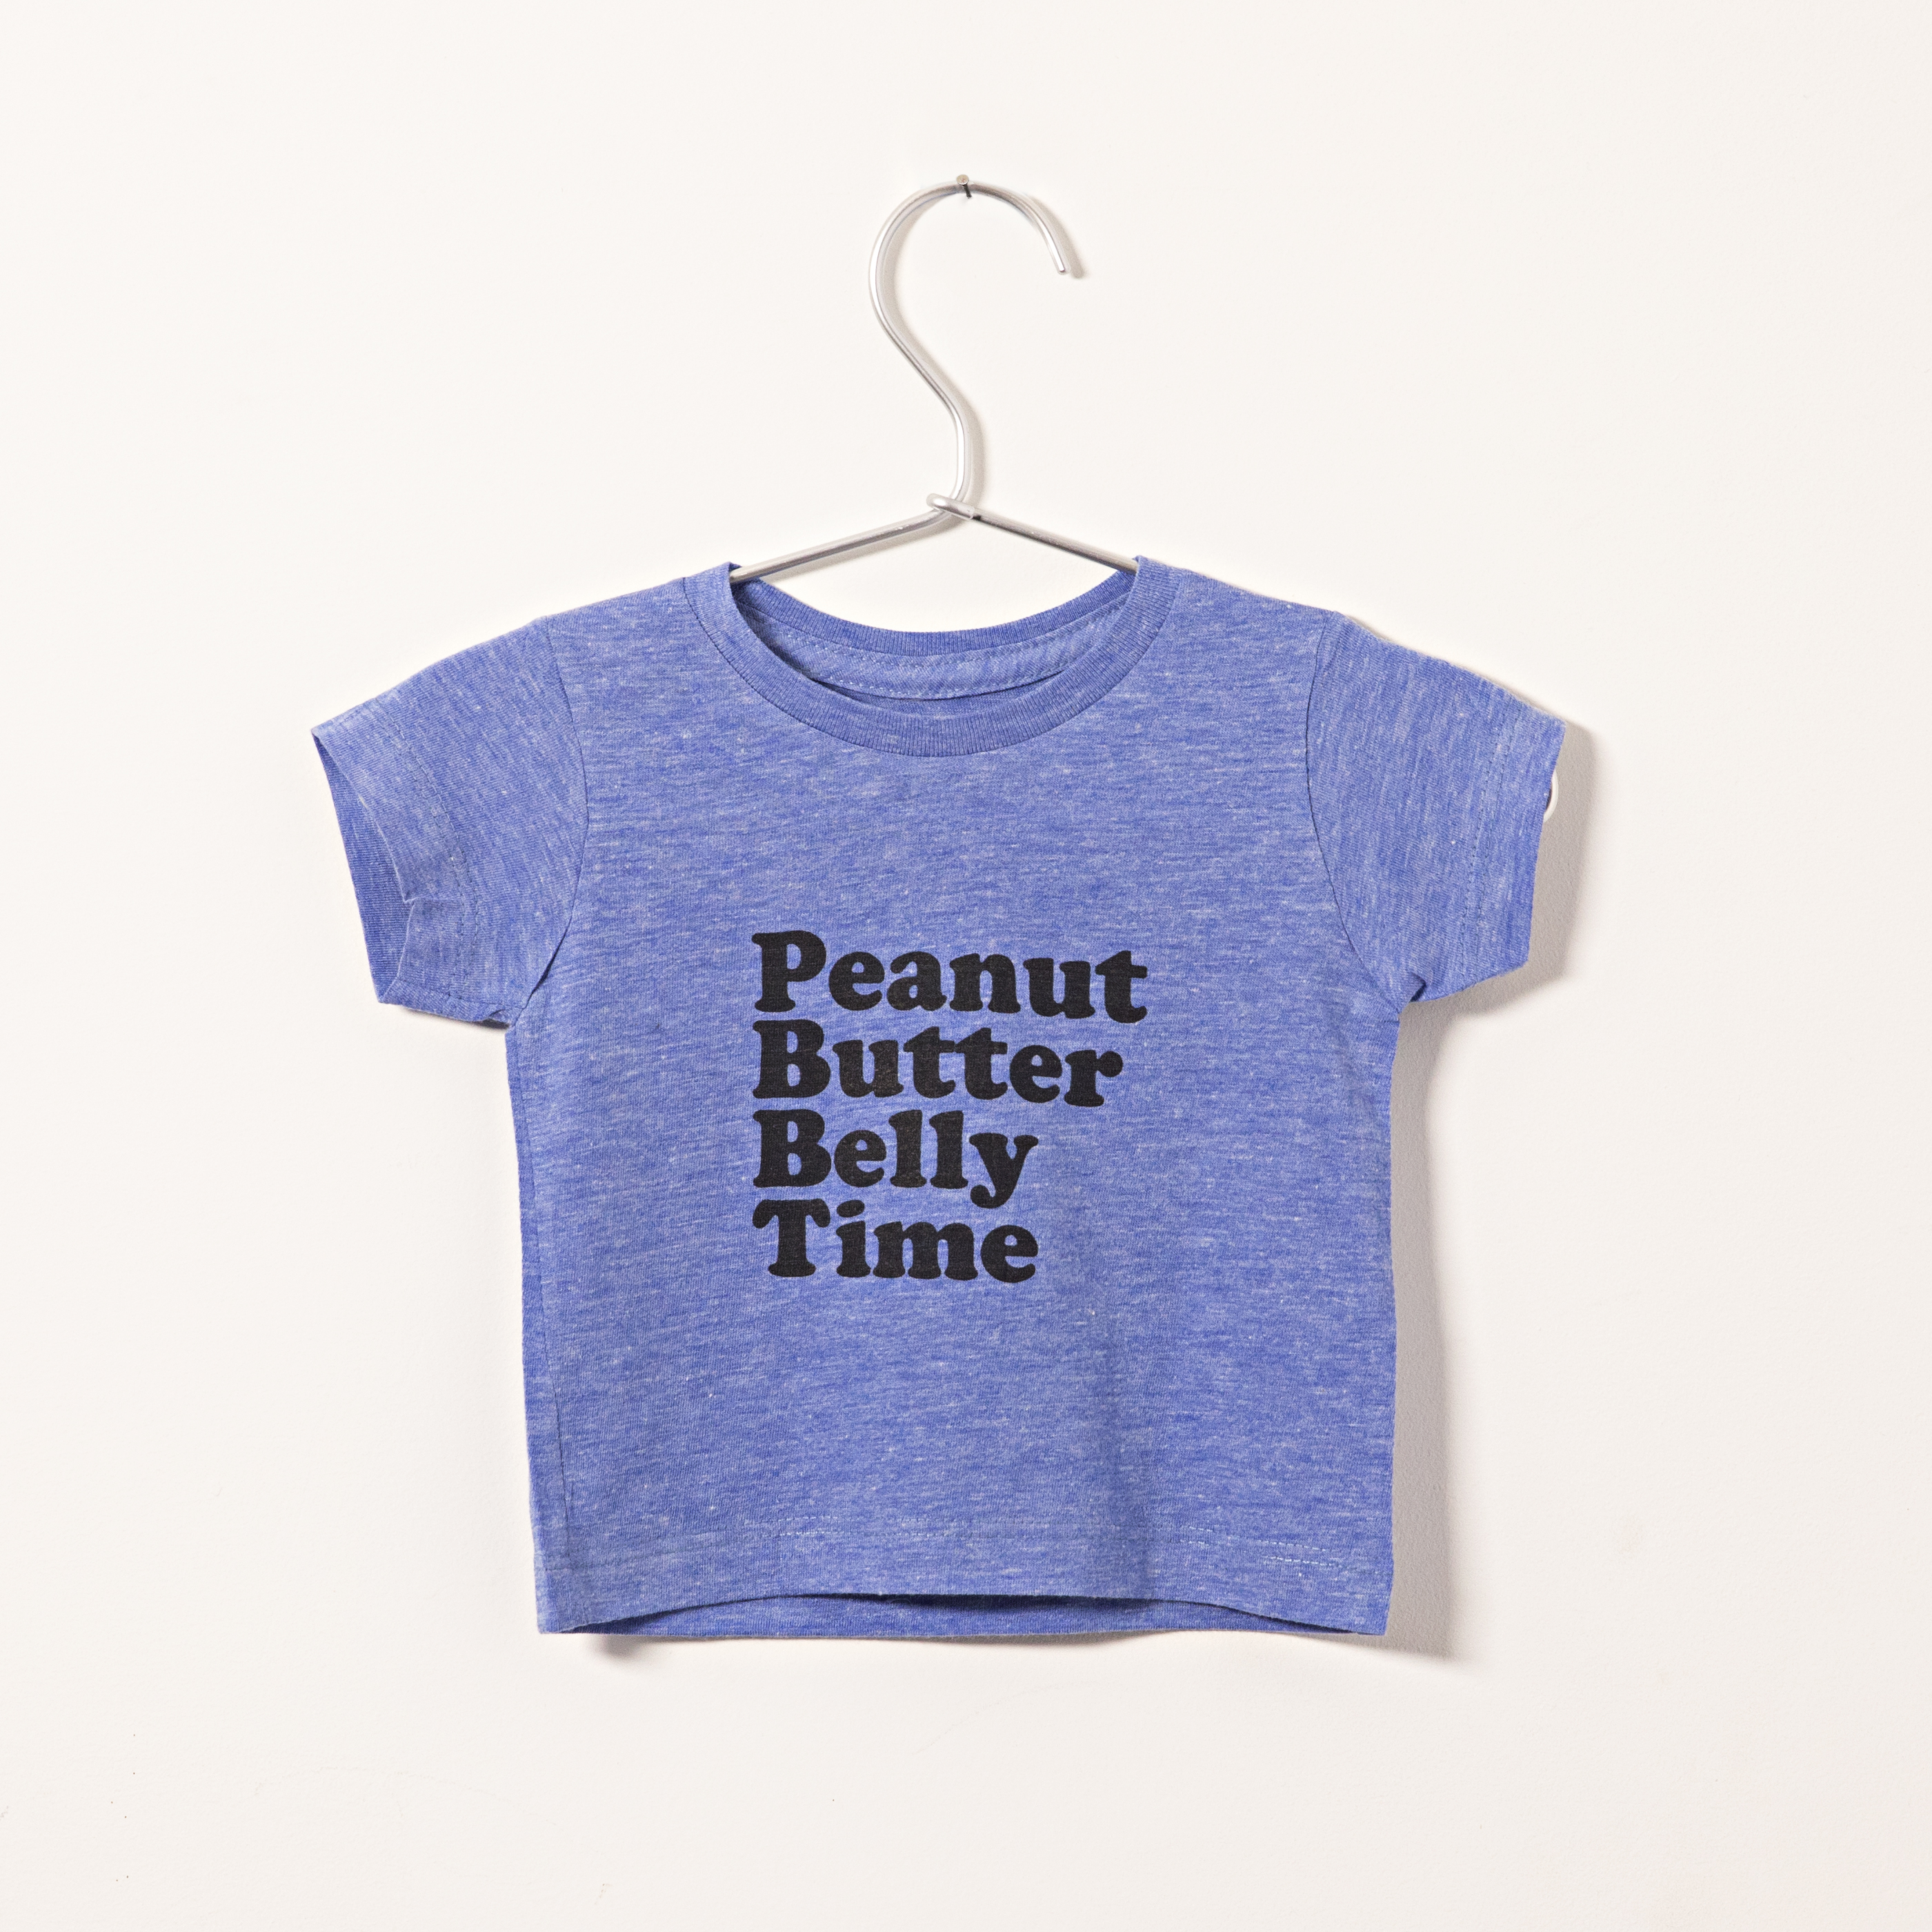 Peanut butter Belly Time Tee